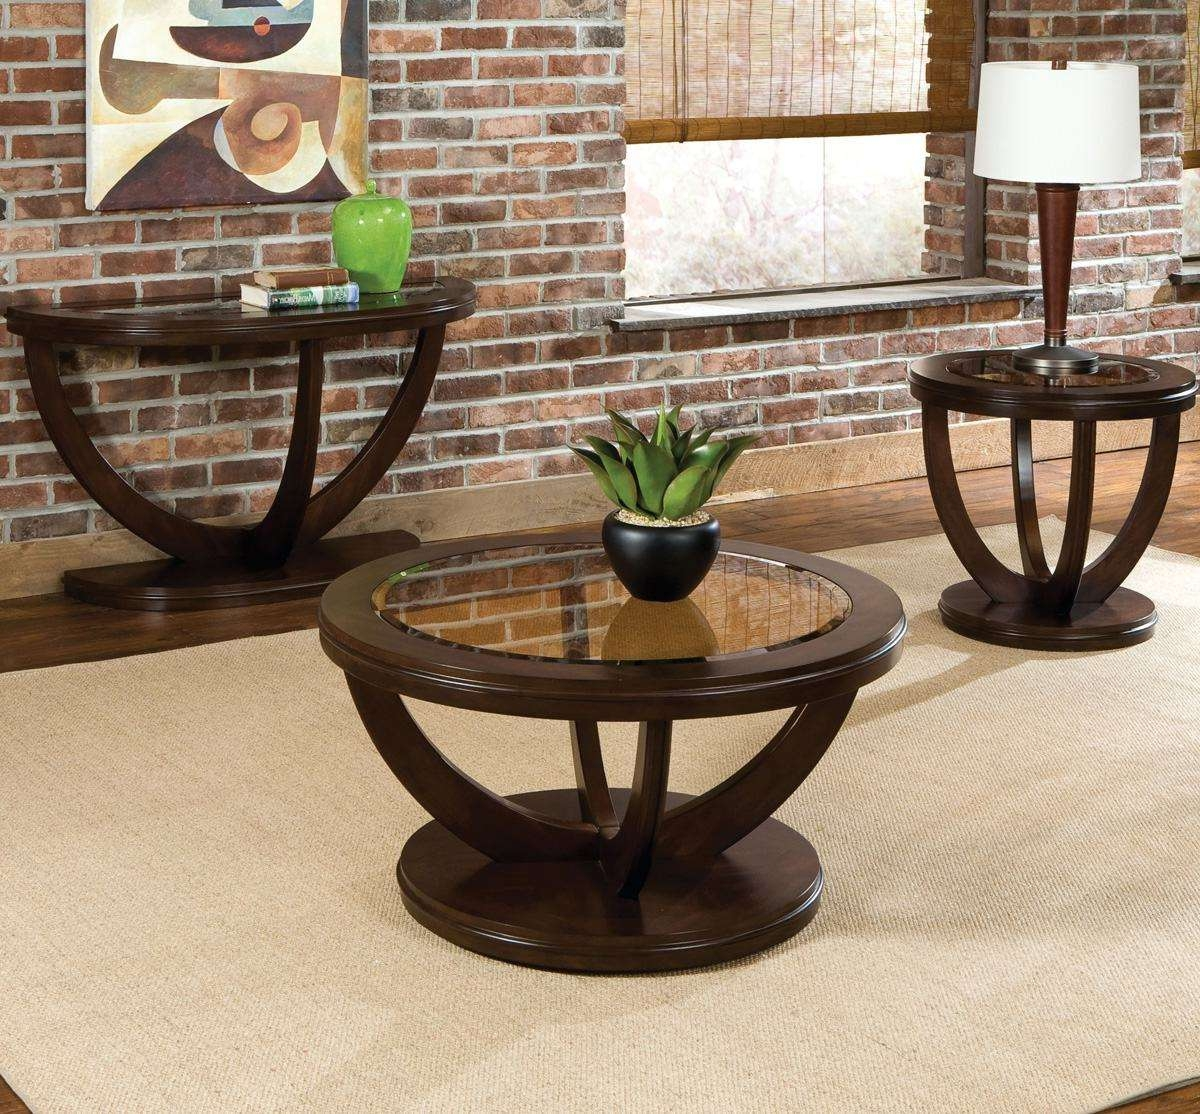 Widely Used Cherry Wood Coffee Table Sets Inside Standard Furniture La Jolla 3 Piece Coffee Table Set In Cherry (View 20 of 20)